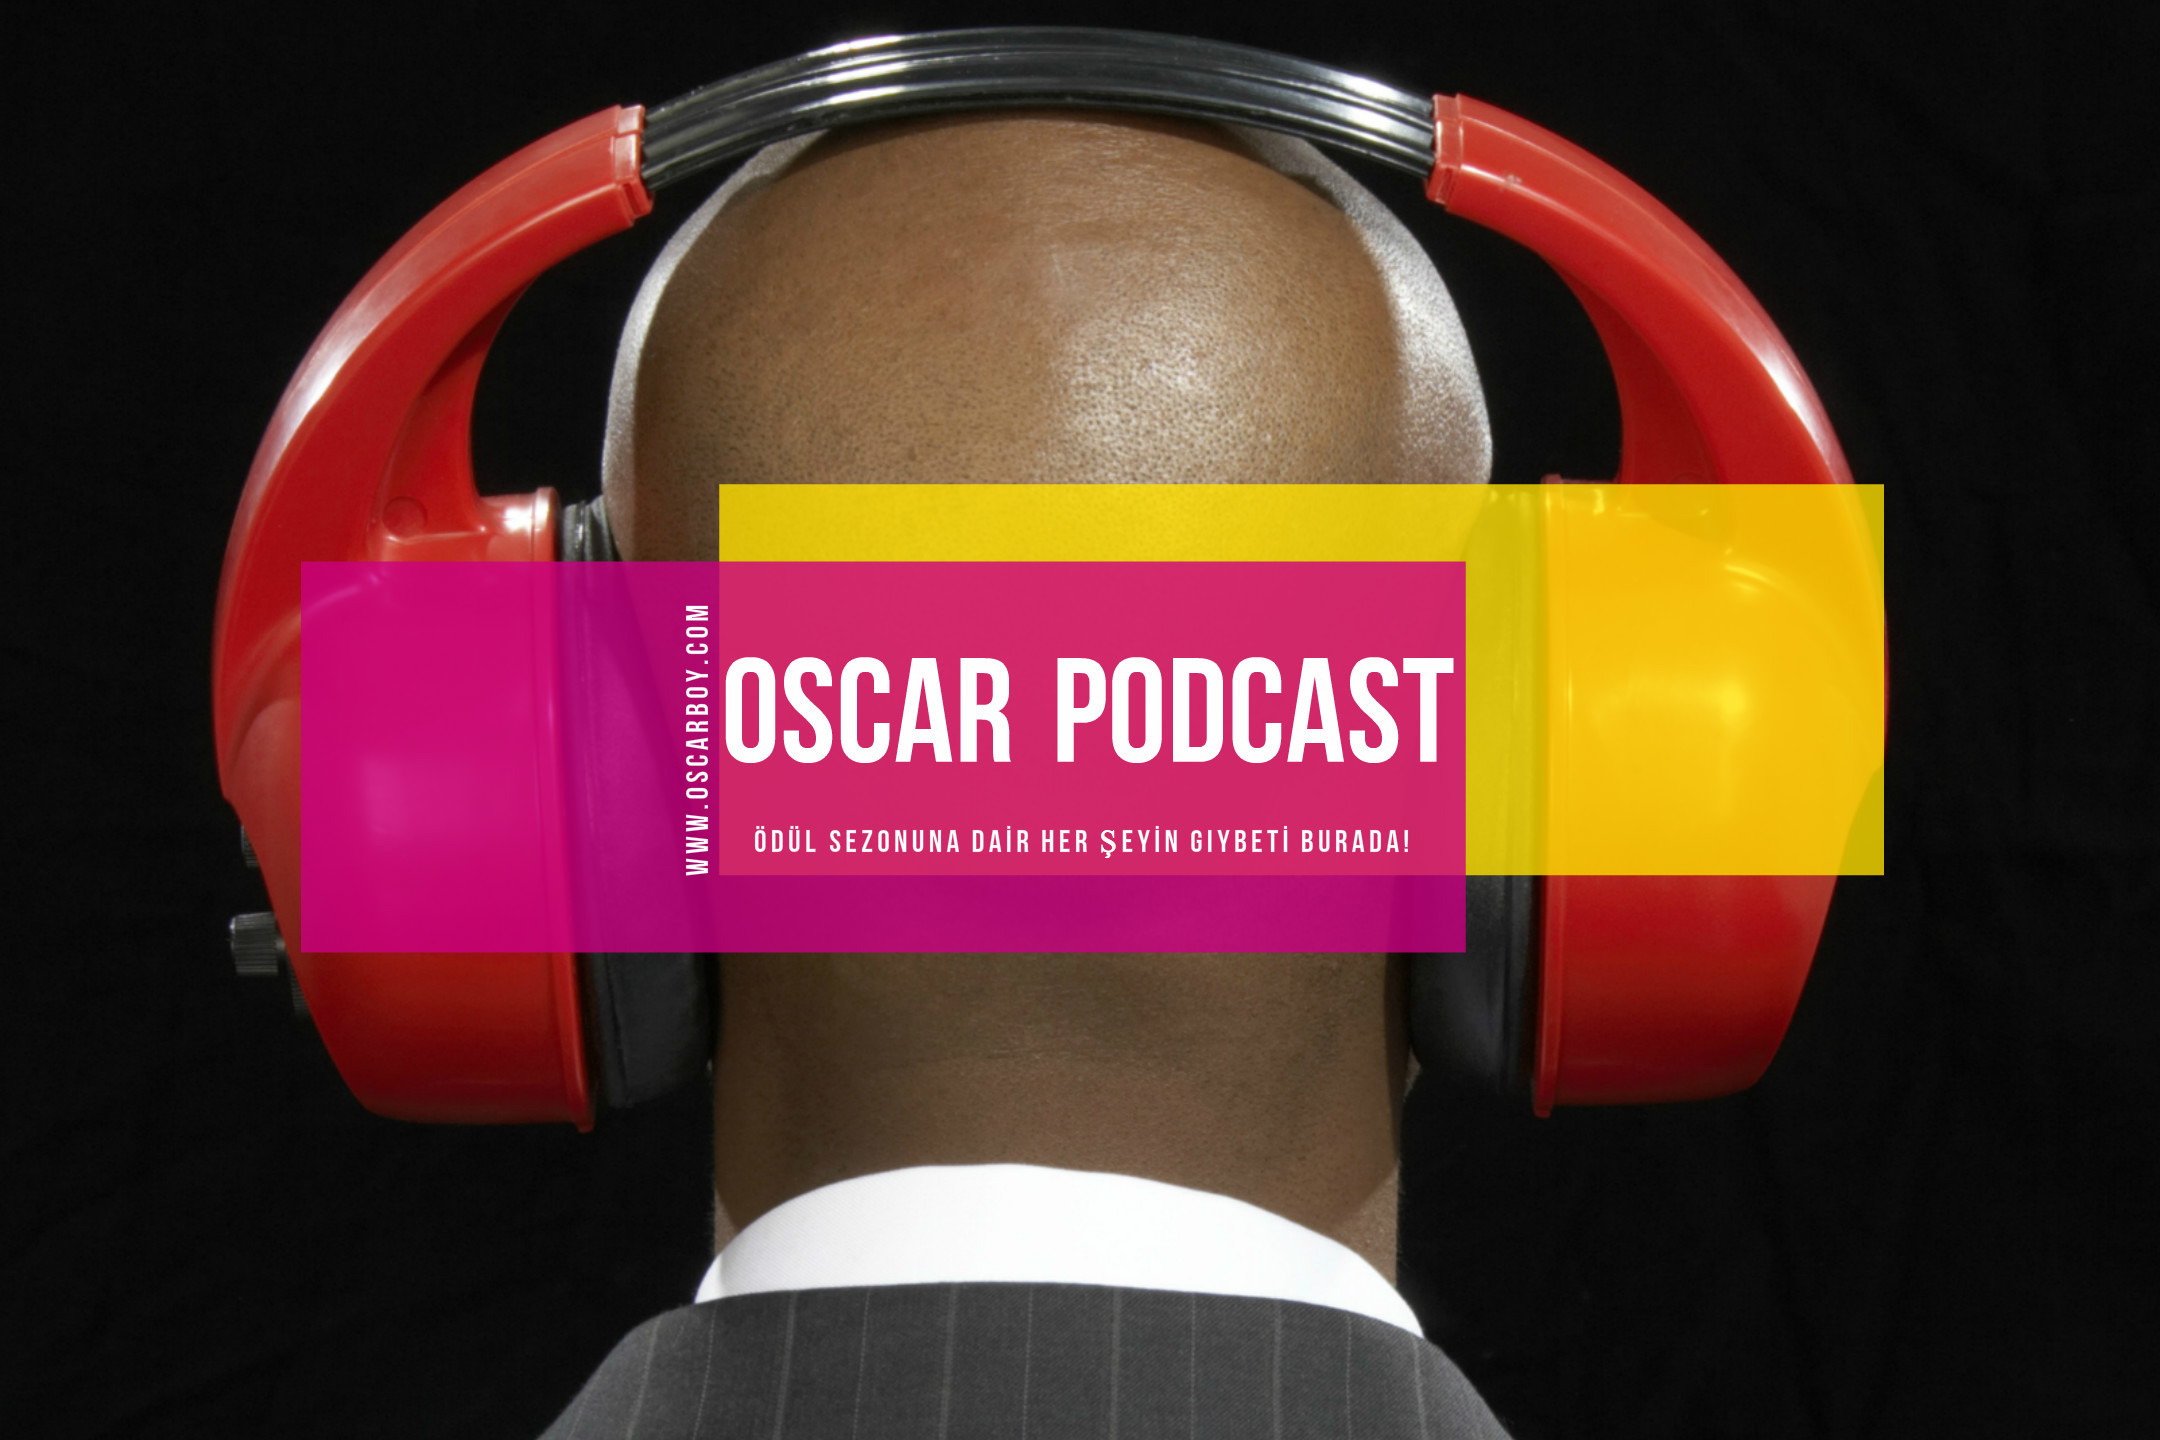 Oscar Podcast